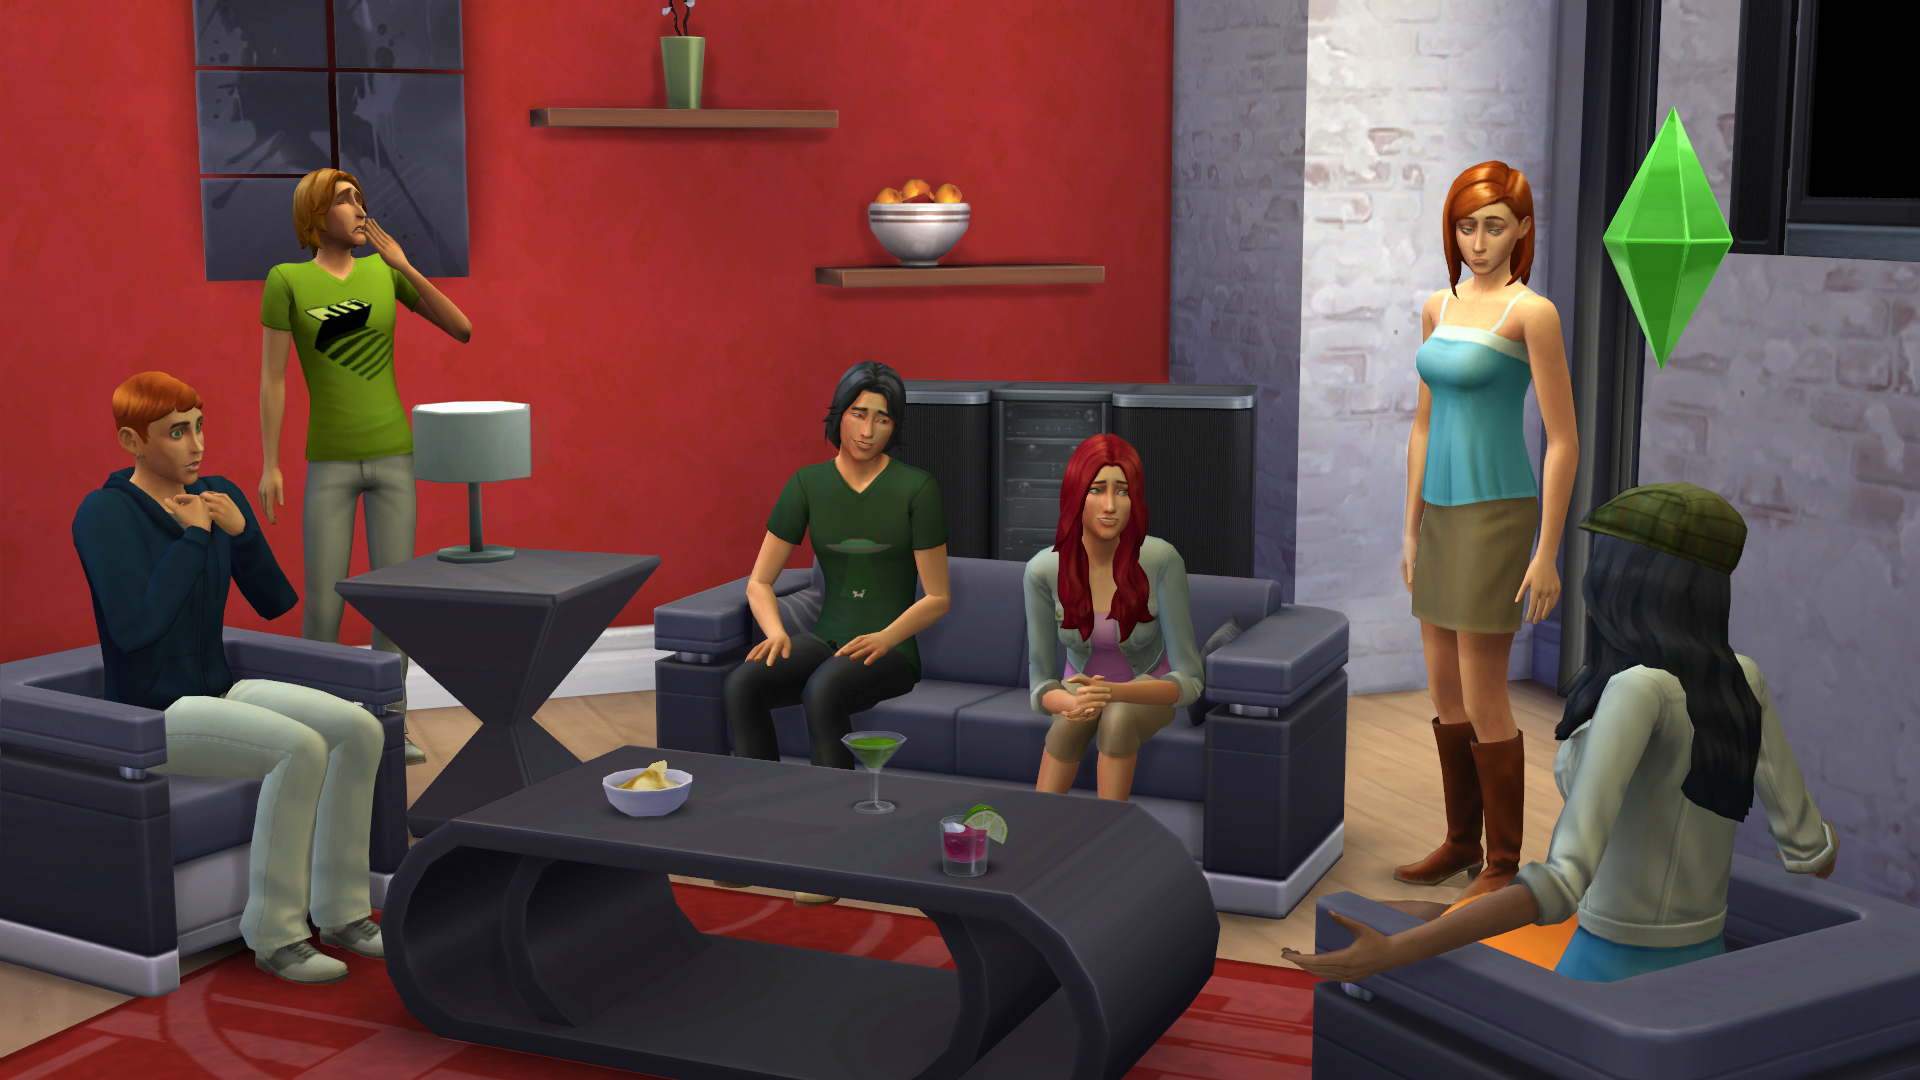 The Sims 4 is free on PC right now